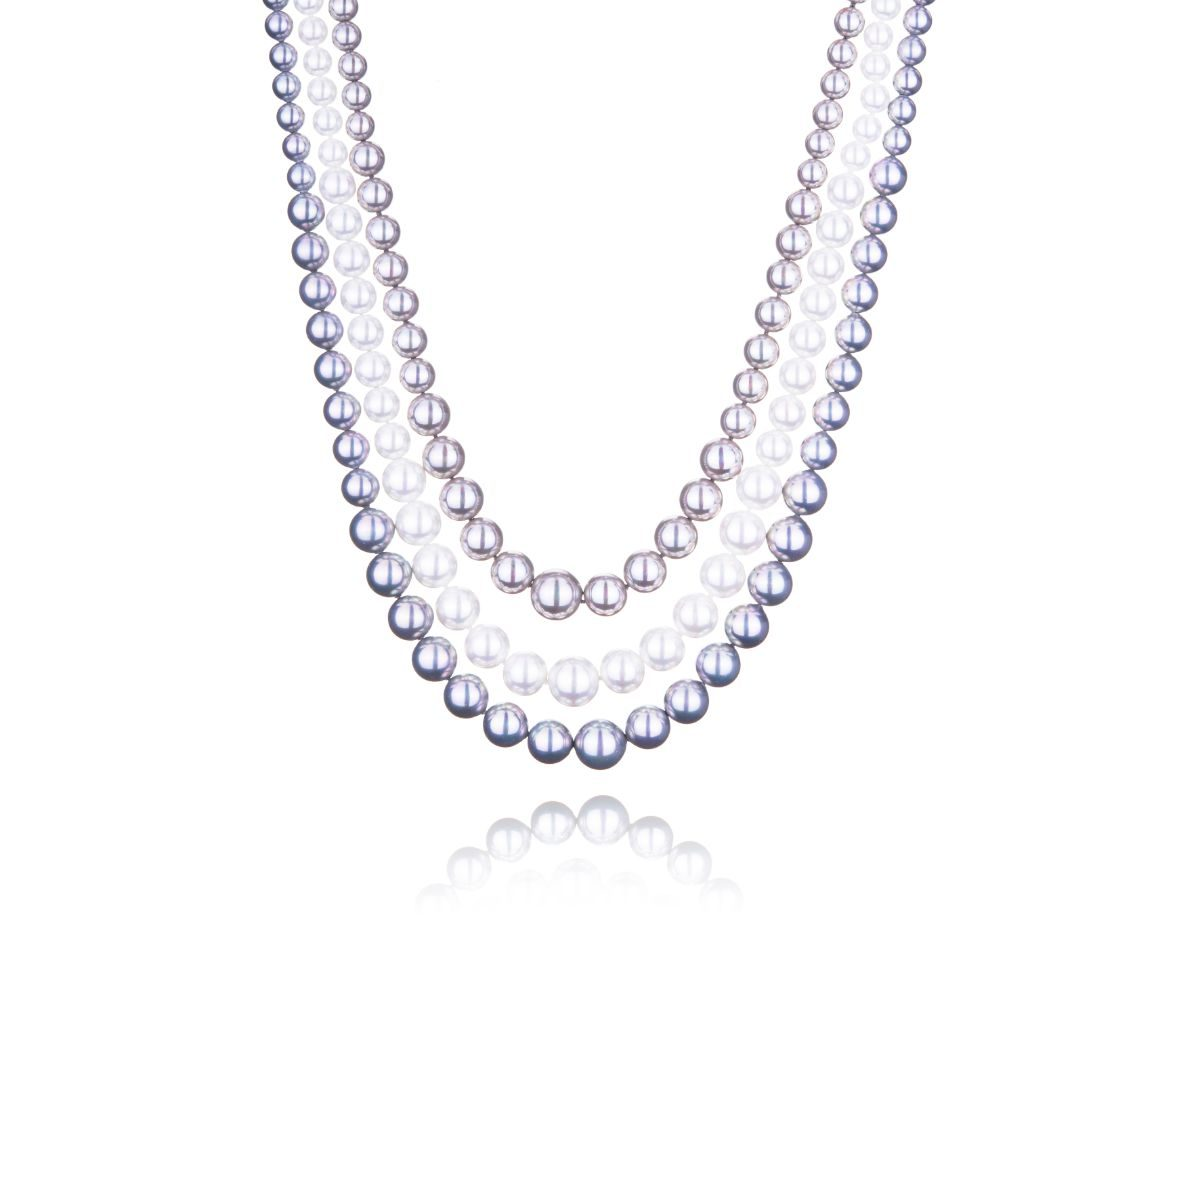 Corsica short three-strand necklace of majestic pearls in three different shades of silver